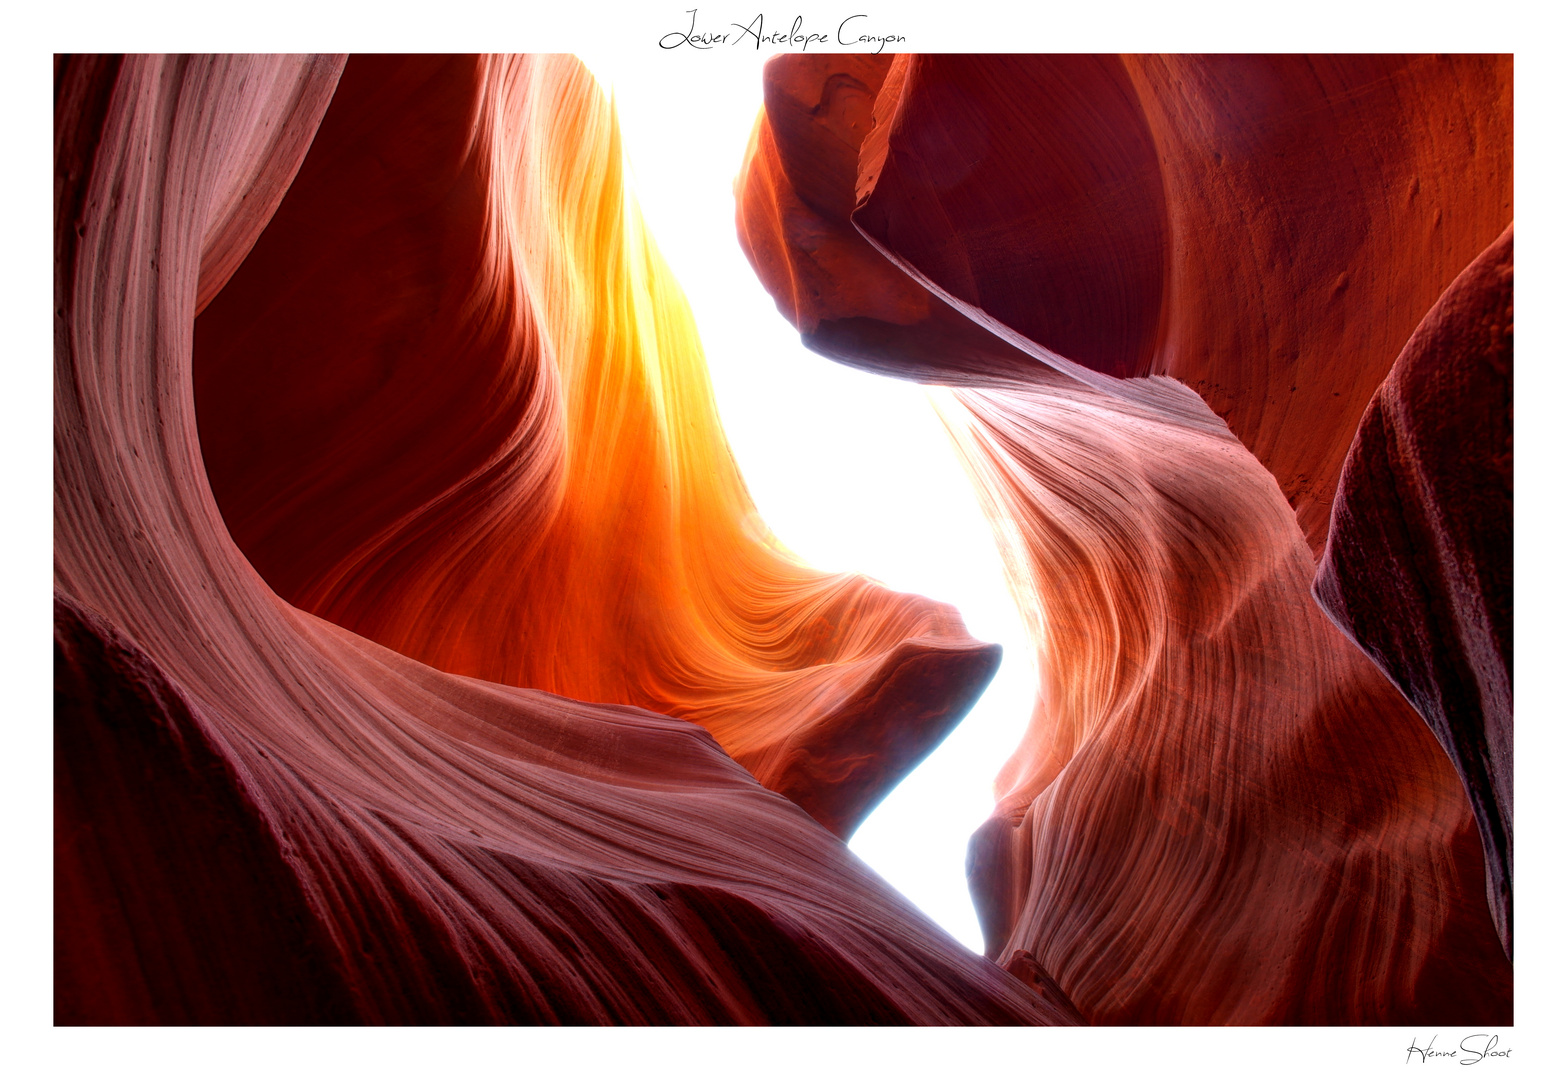 Colourful Antelope Canyon